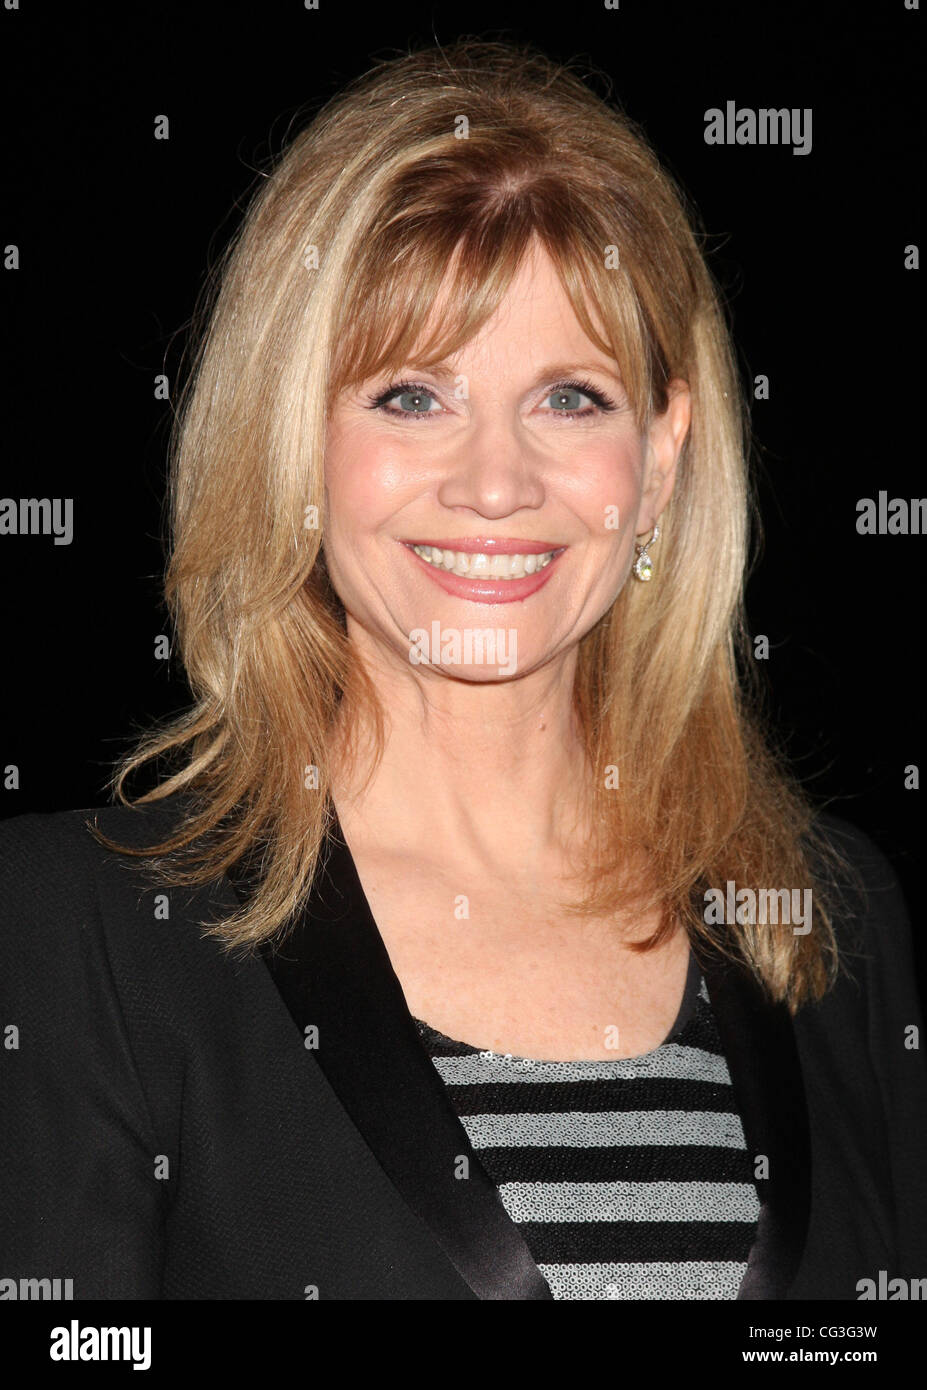 Markie Post   Hallmark Channel's Premiere Evening Gala Winter 2011 TCA Press Tour held at Tournament of Roses - Stock Image